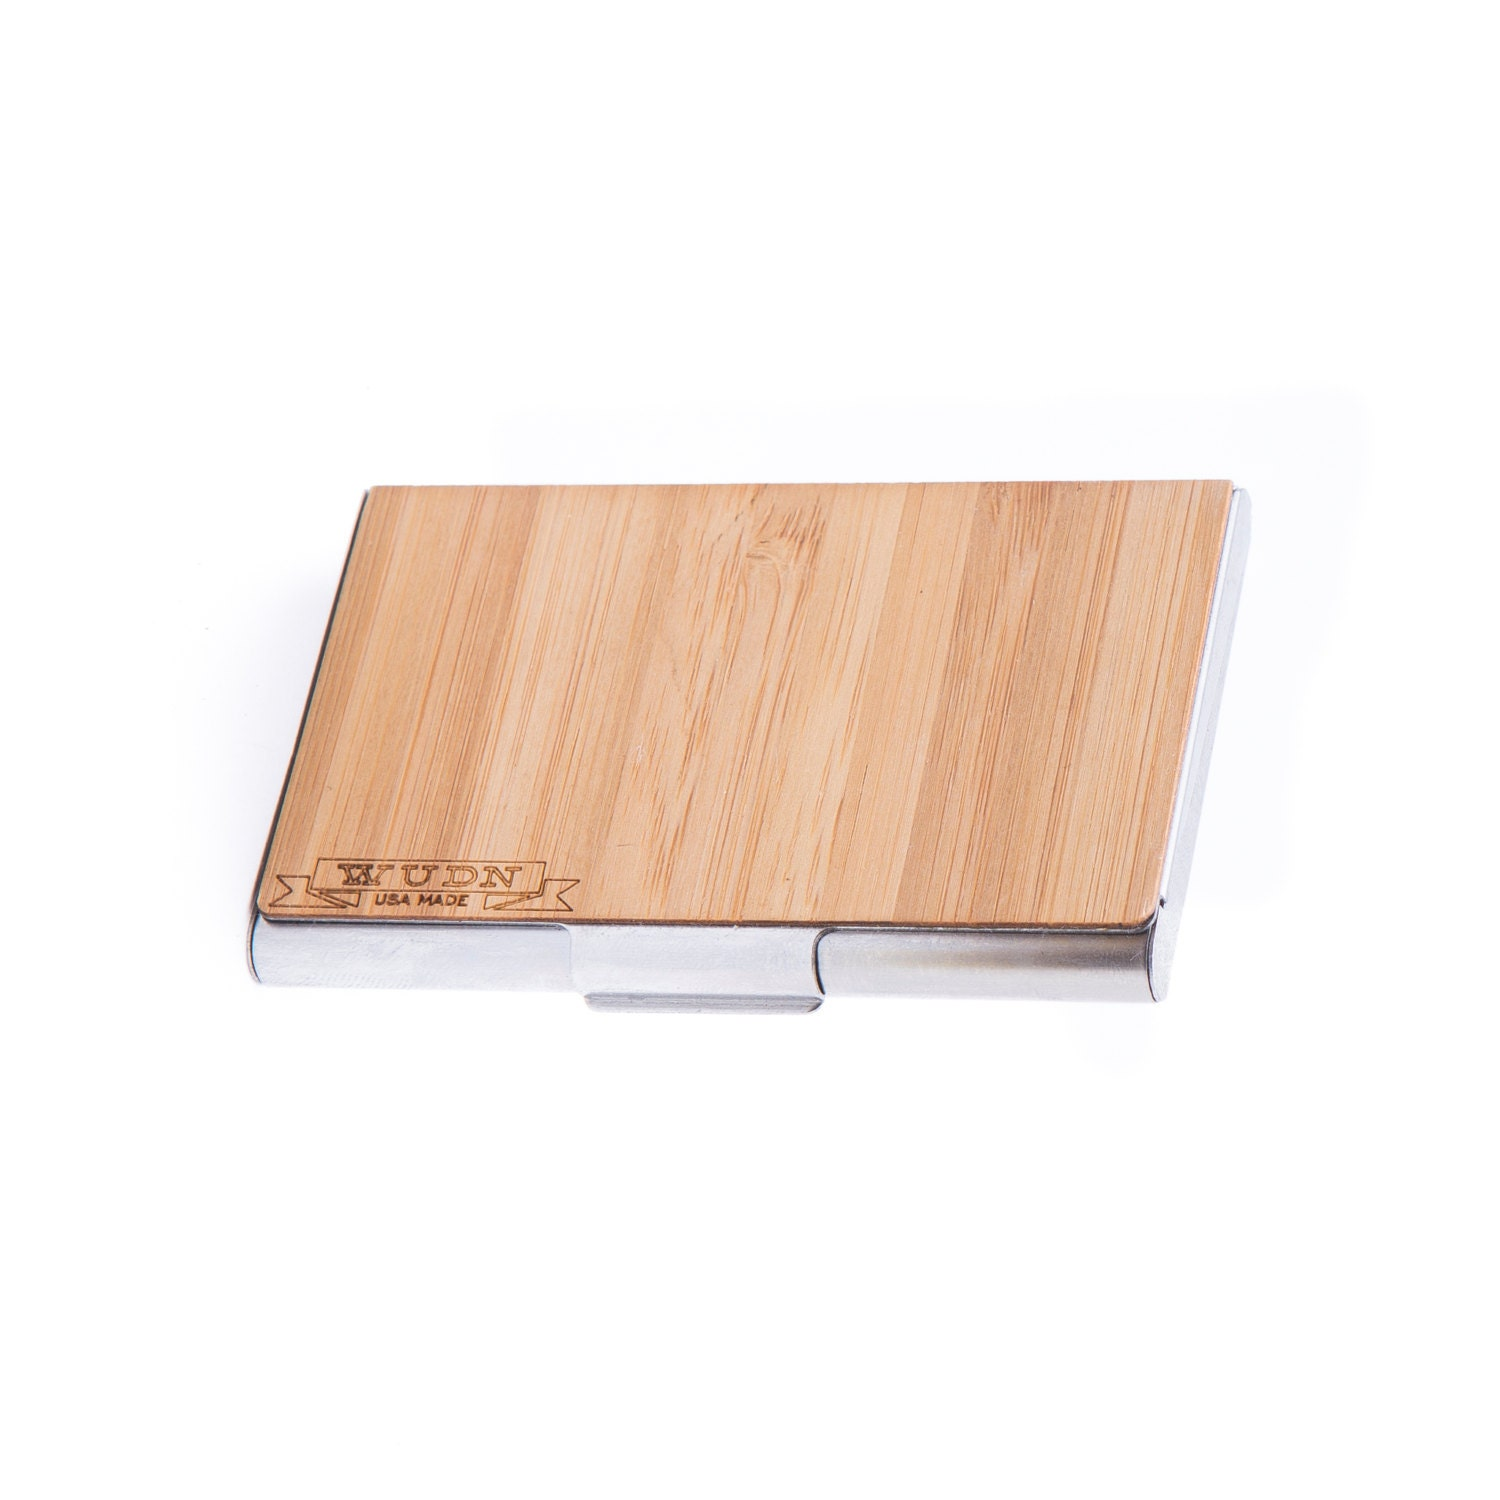 Woodworking Business Card Holder With Innovative Trend | egorlin.com